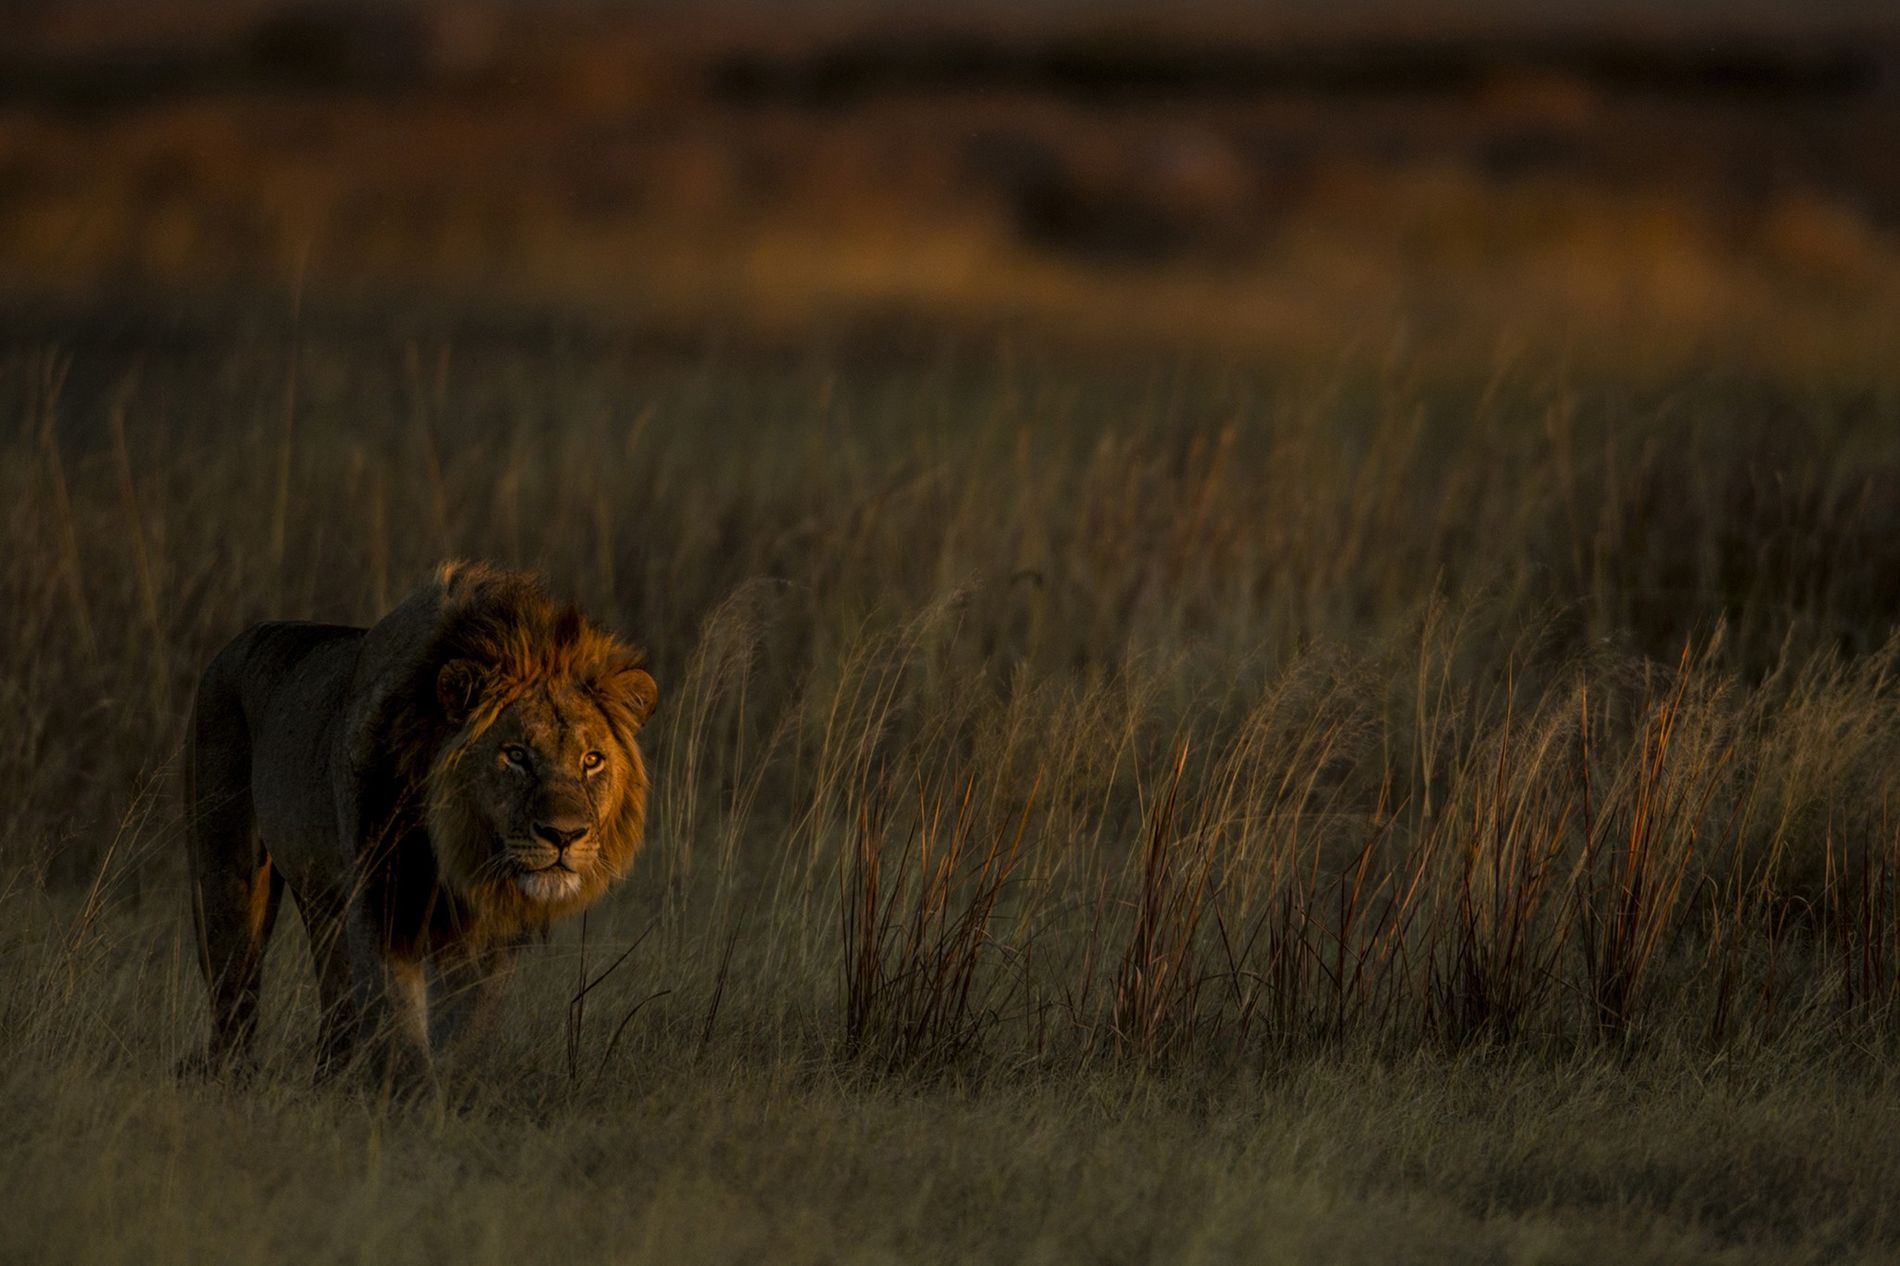 When hunting finally stopped in what is now the Solenda game reserve, there were two lions ...